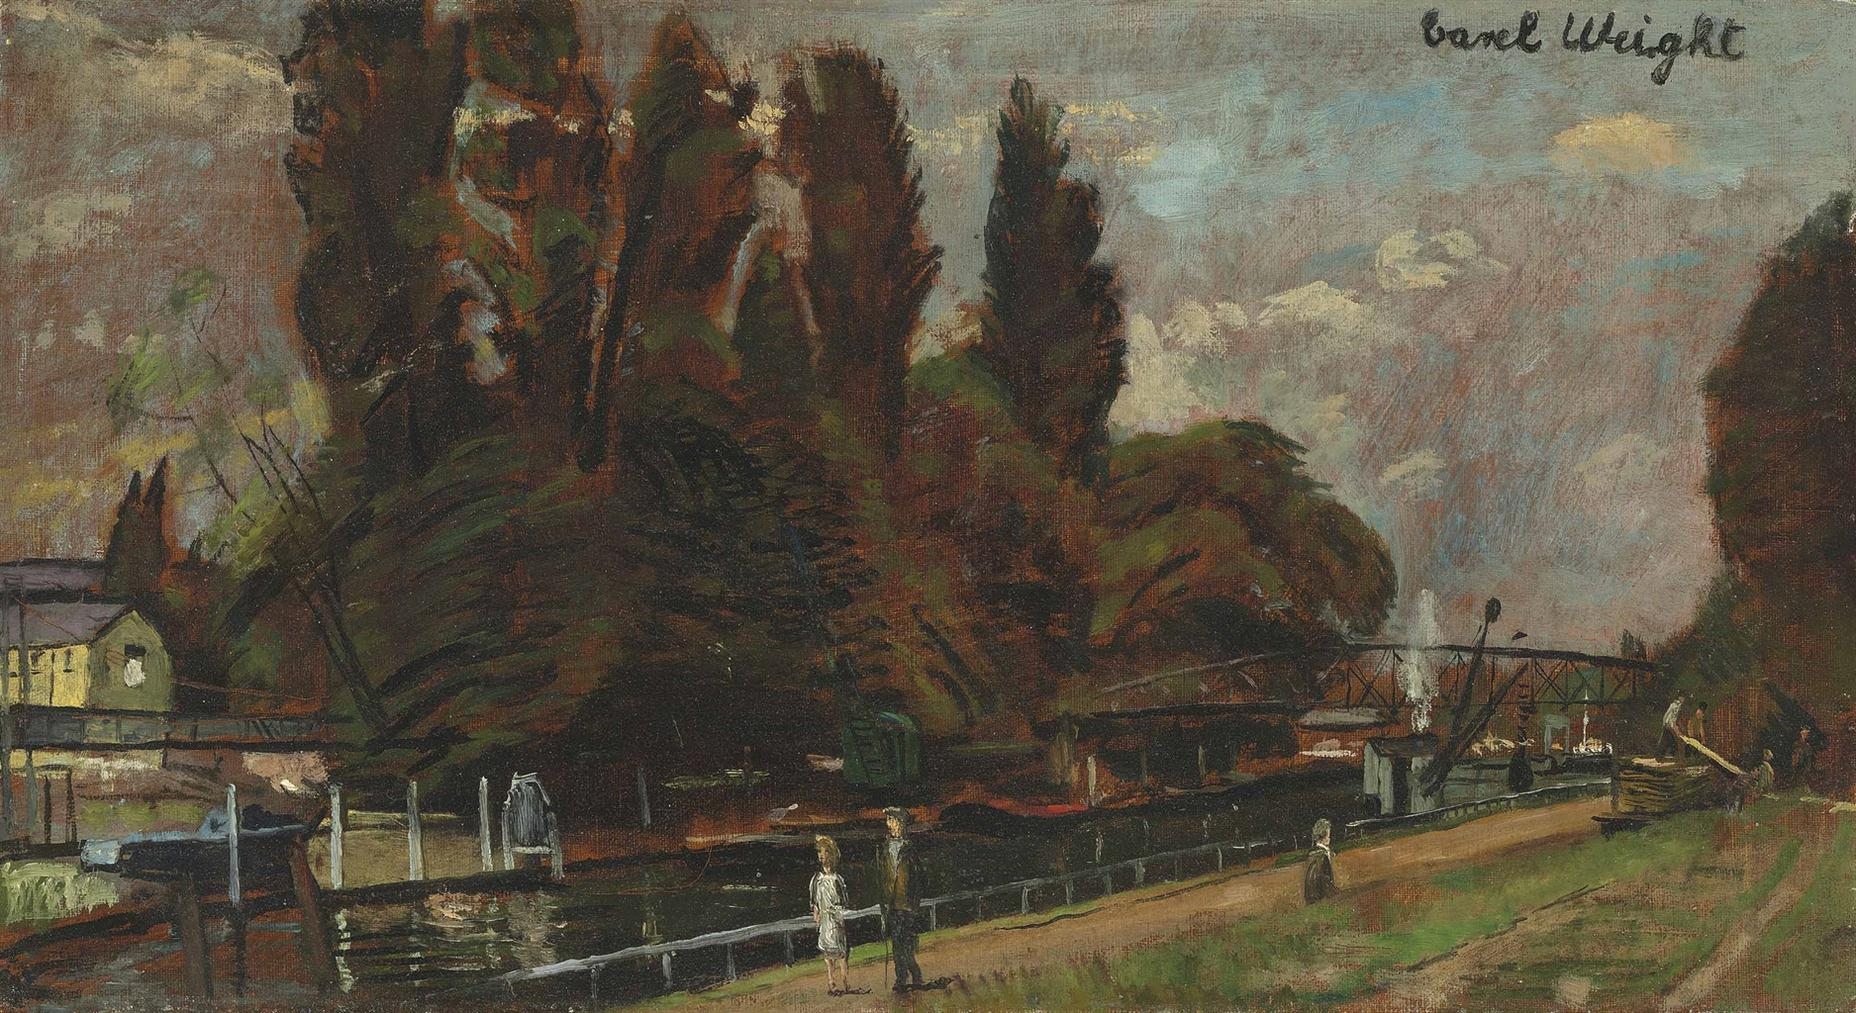 Carel Weight-Along The Thames-